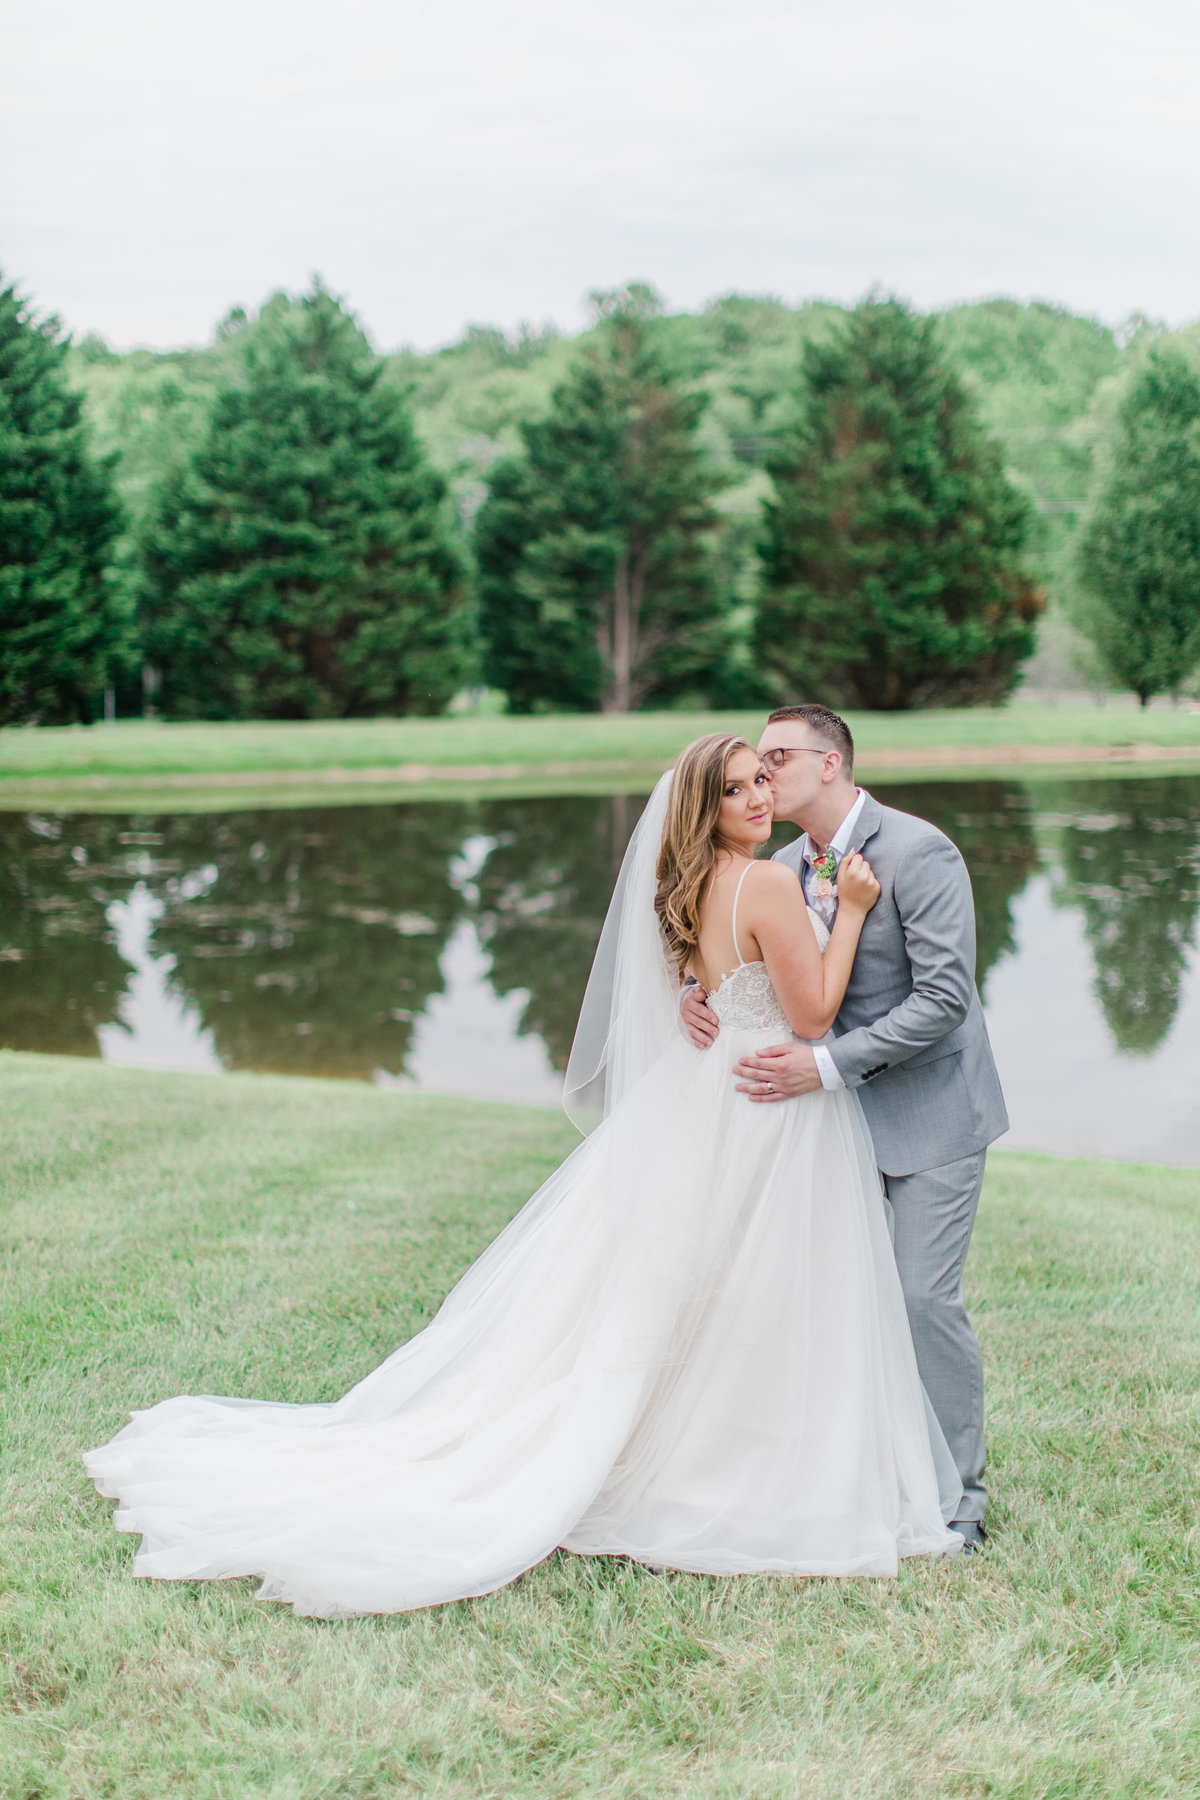 RockHillPlantation_Wedding_KatieZach_AngelikaJohnsPhotography-4801